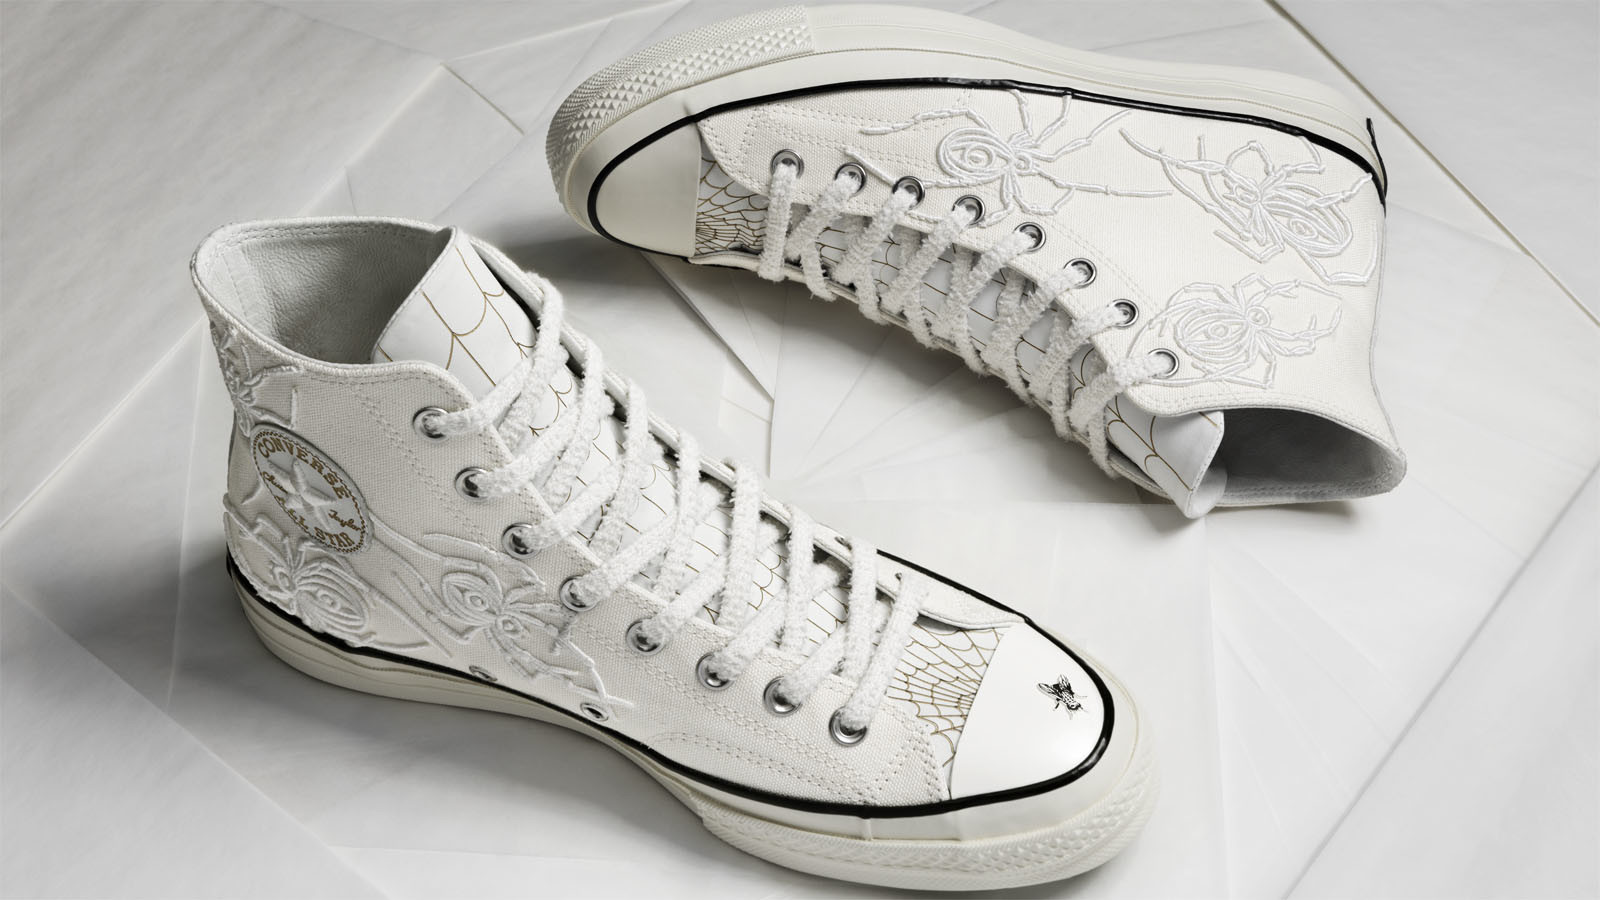 Tattoo artist Dr. Woo collaborated with Converse on a line of sneakers treated with his distinctive art.